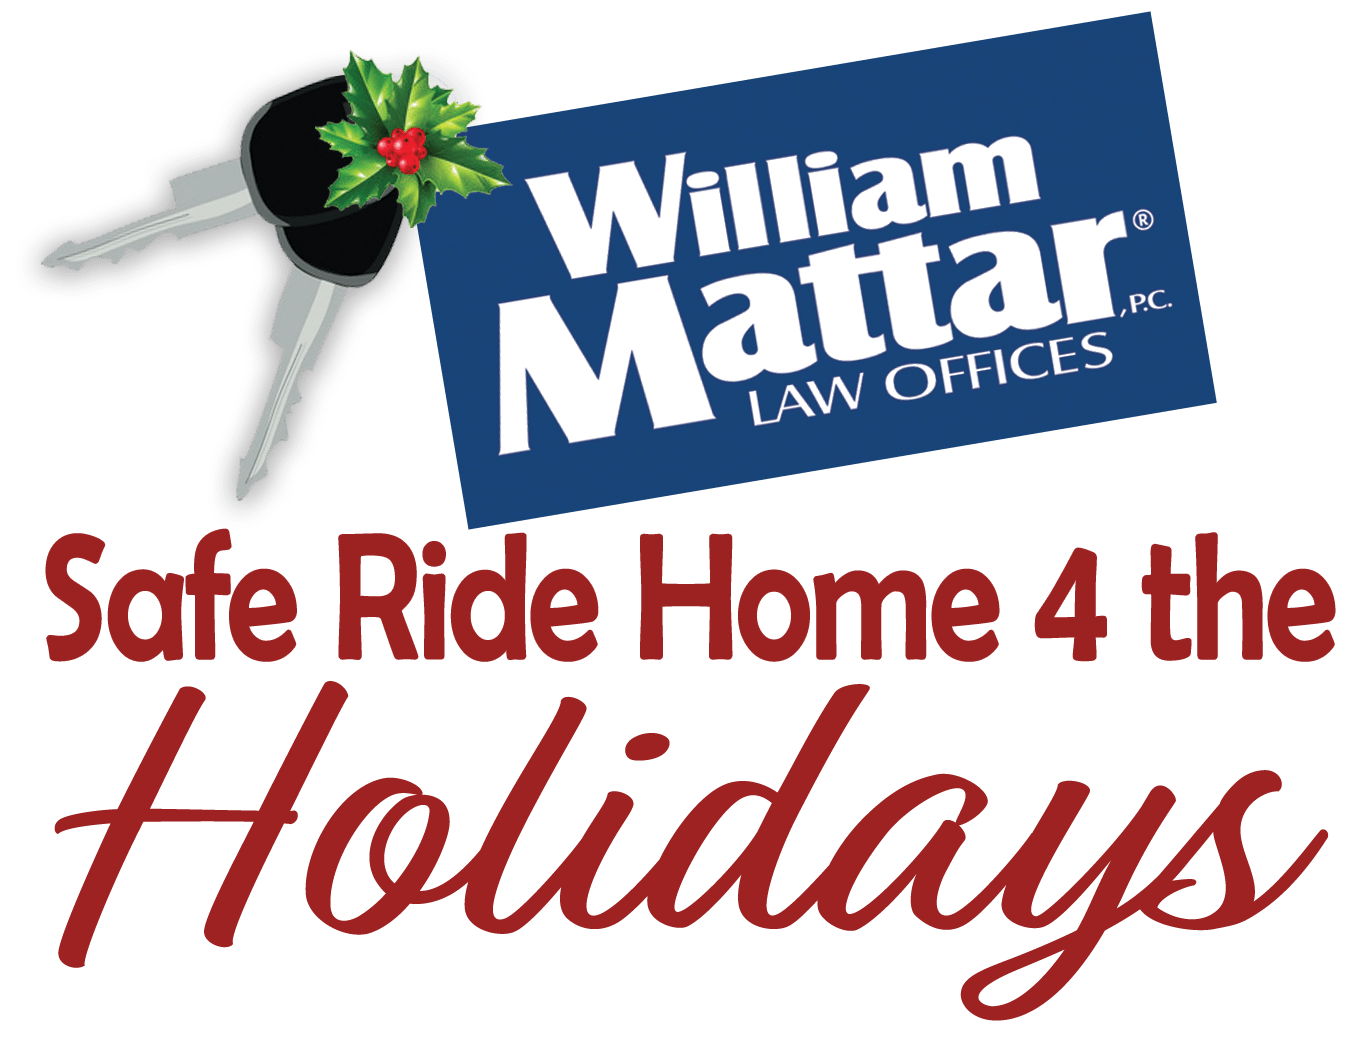 For more information on the Law Offices of William Matter, Please click the logo above.